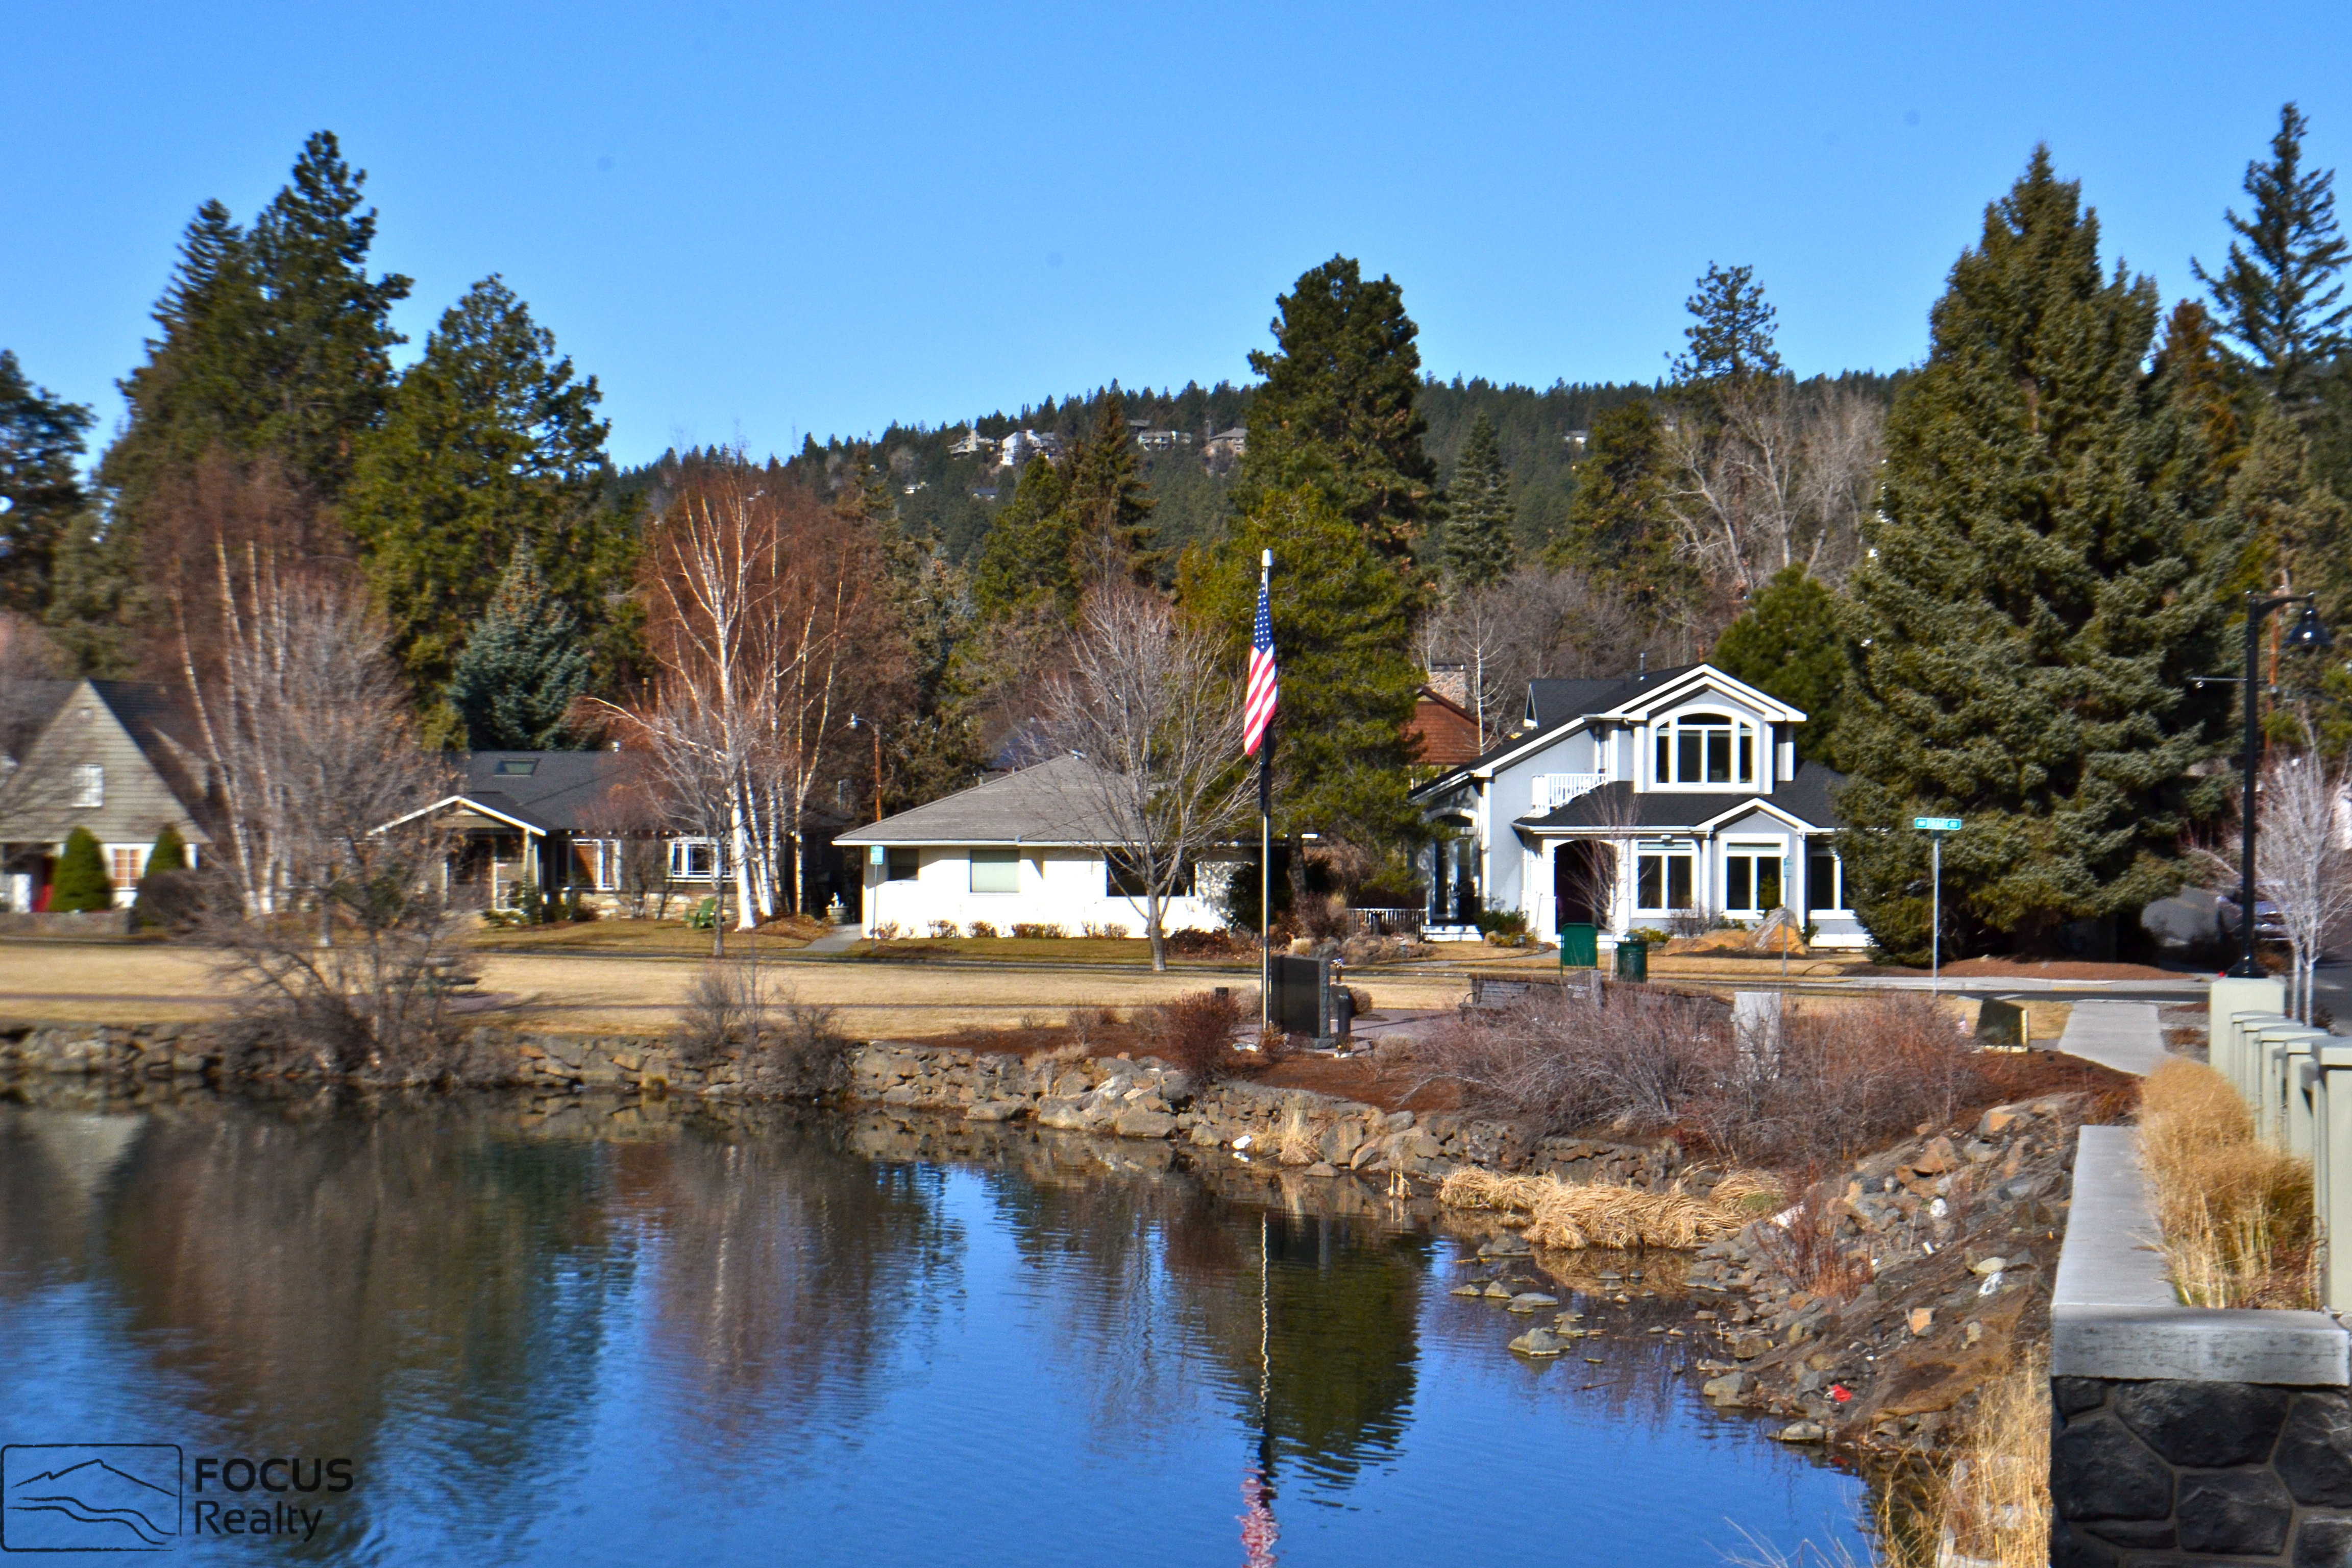 Cascade Lakes Scenic Byway Central Oregon, Mirror pond Downtown Bend Oregon | Downtown Bend | Pinterest ...